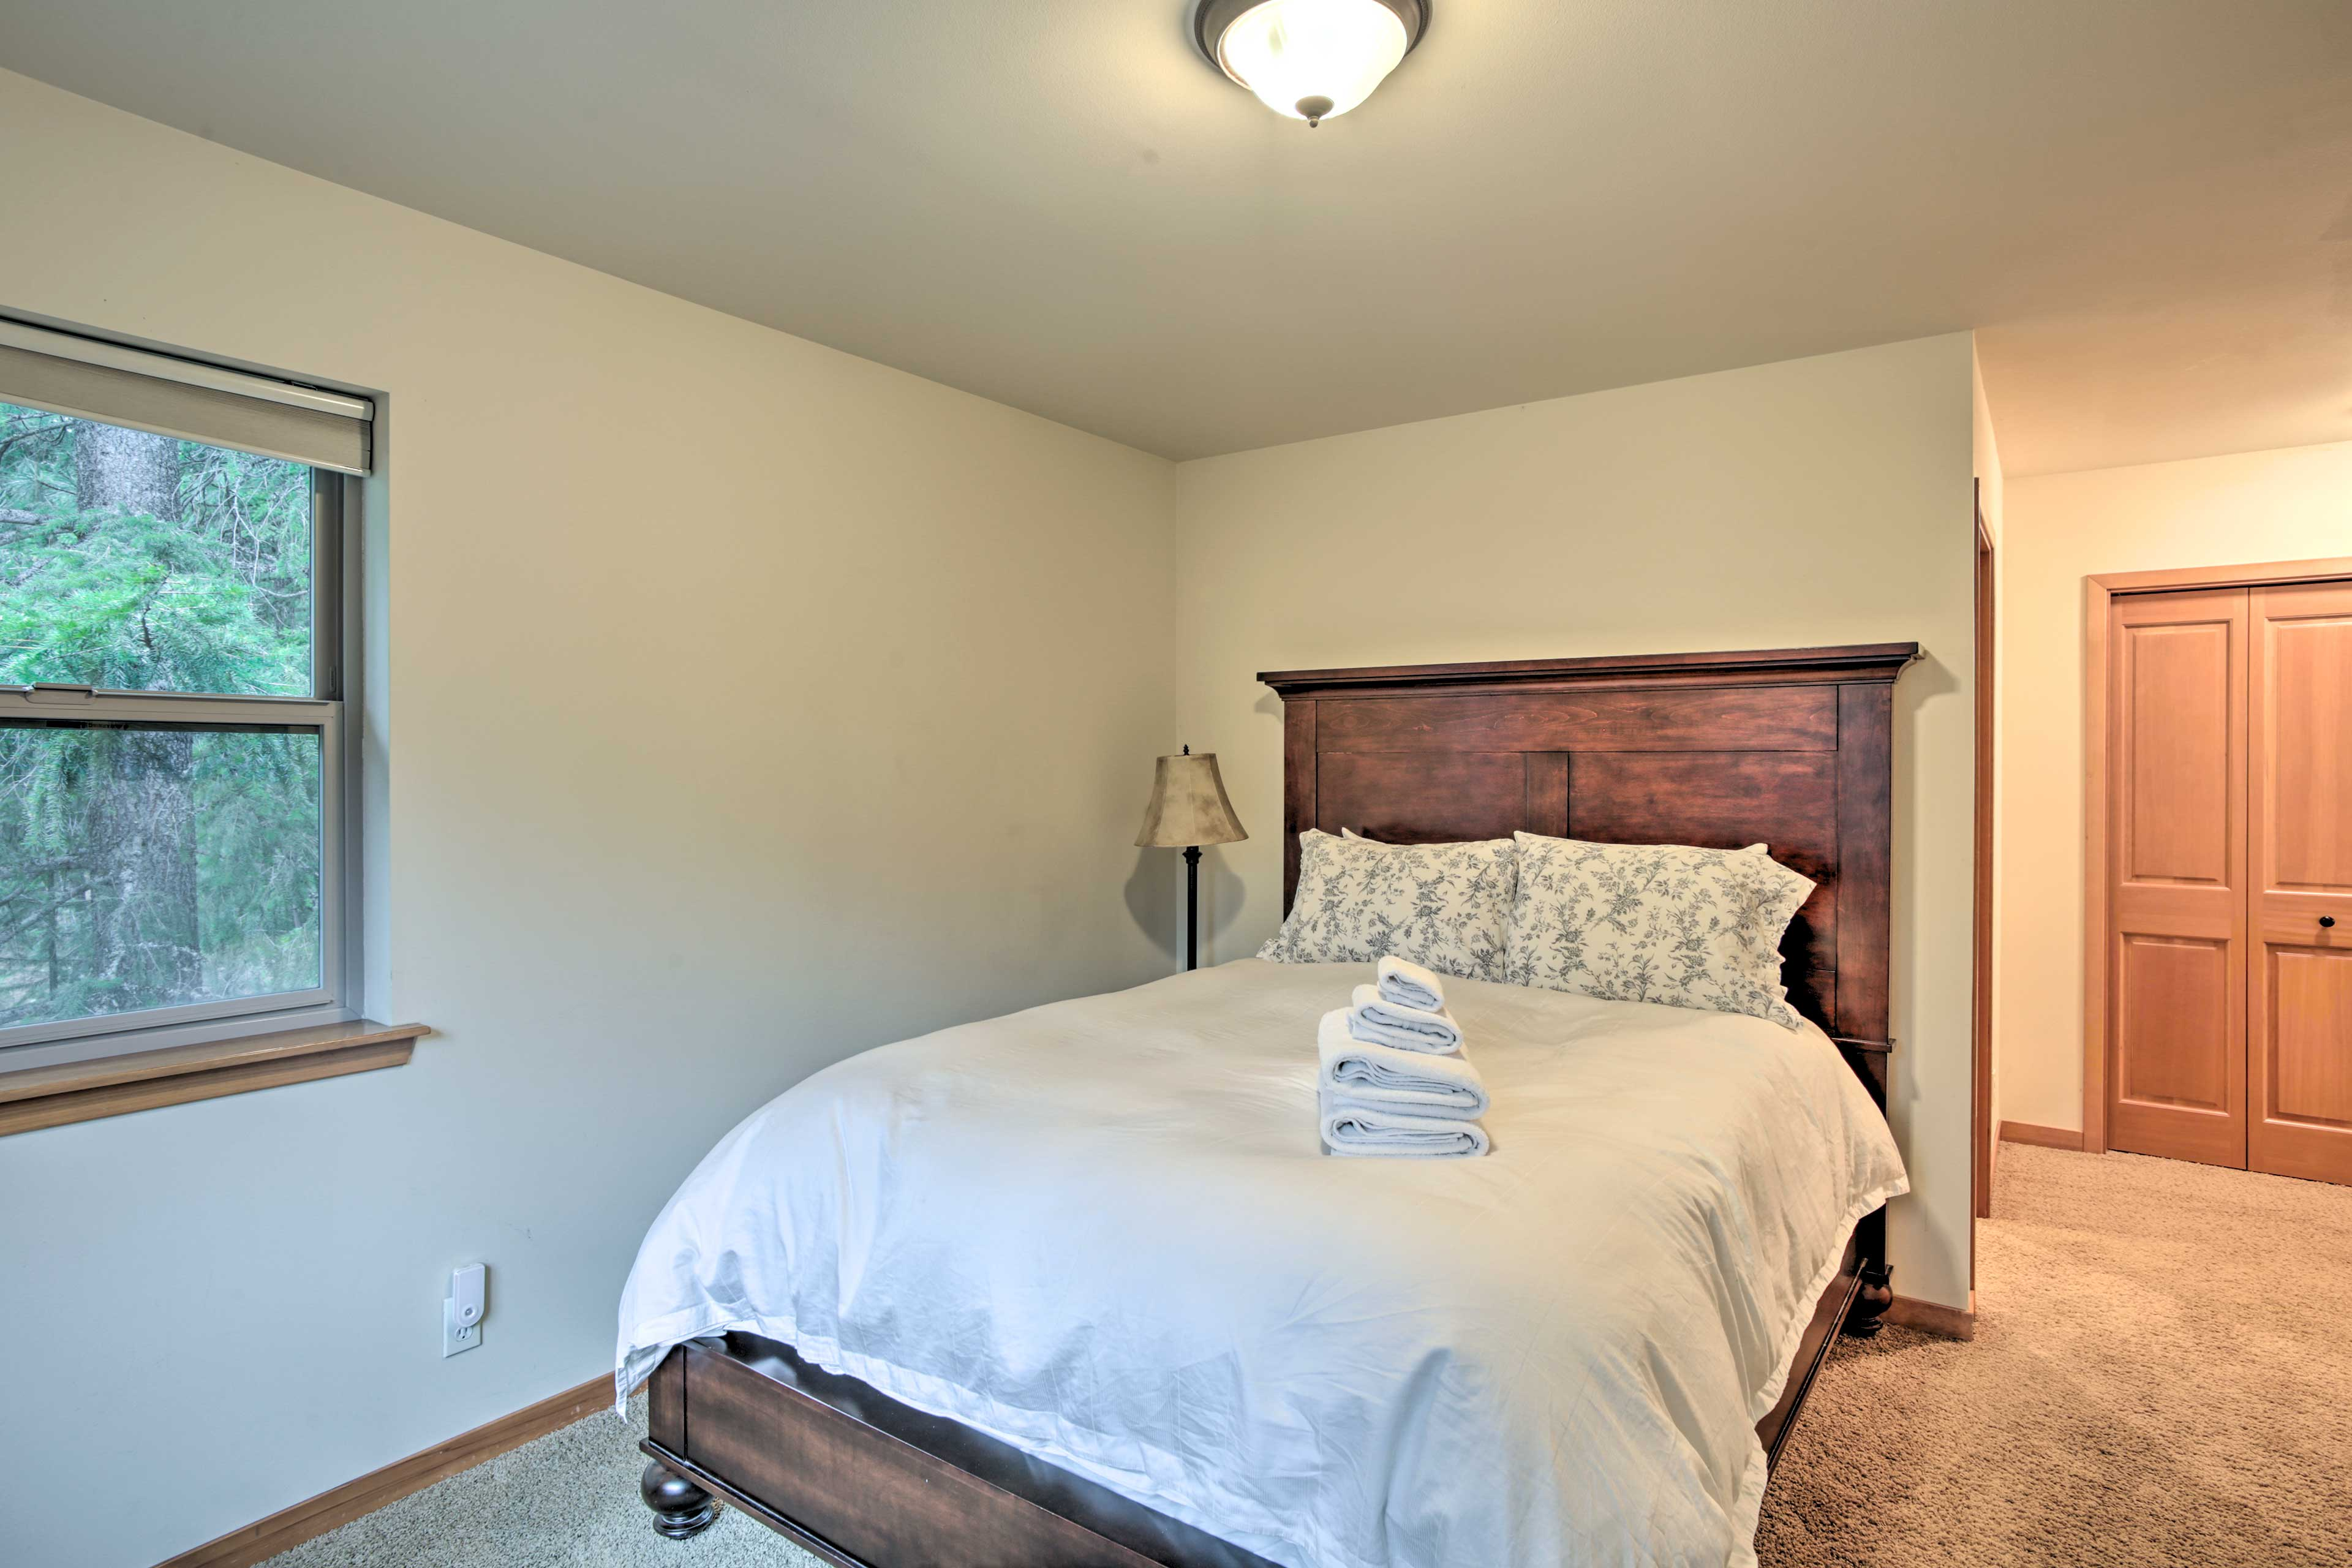 You'll wake up ready for adventure in this queen bed.